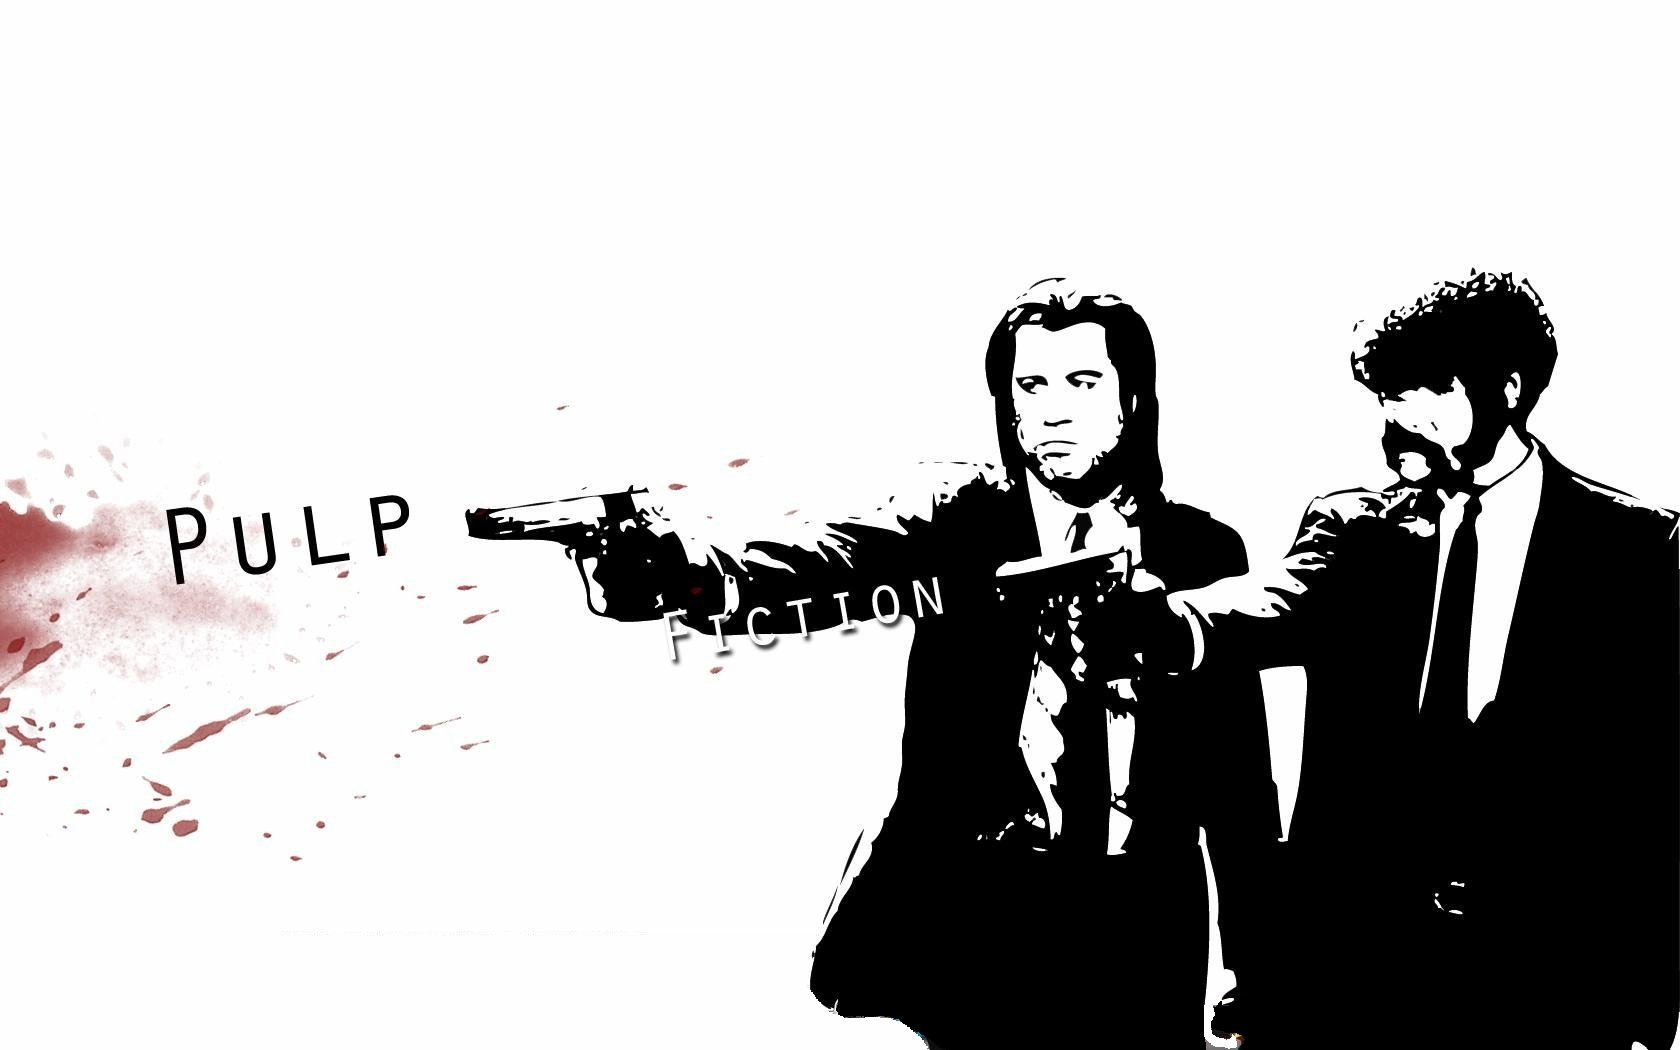 Pulp Fiction Wallpapers Top Free Pulp Fiction Backgrounds